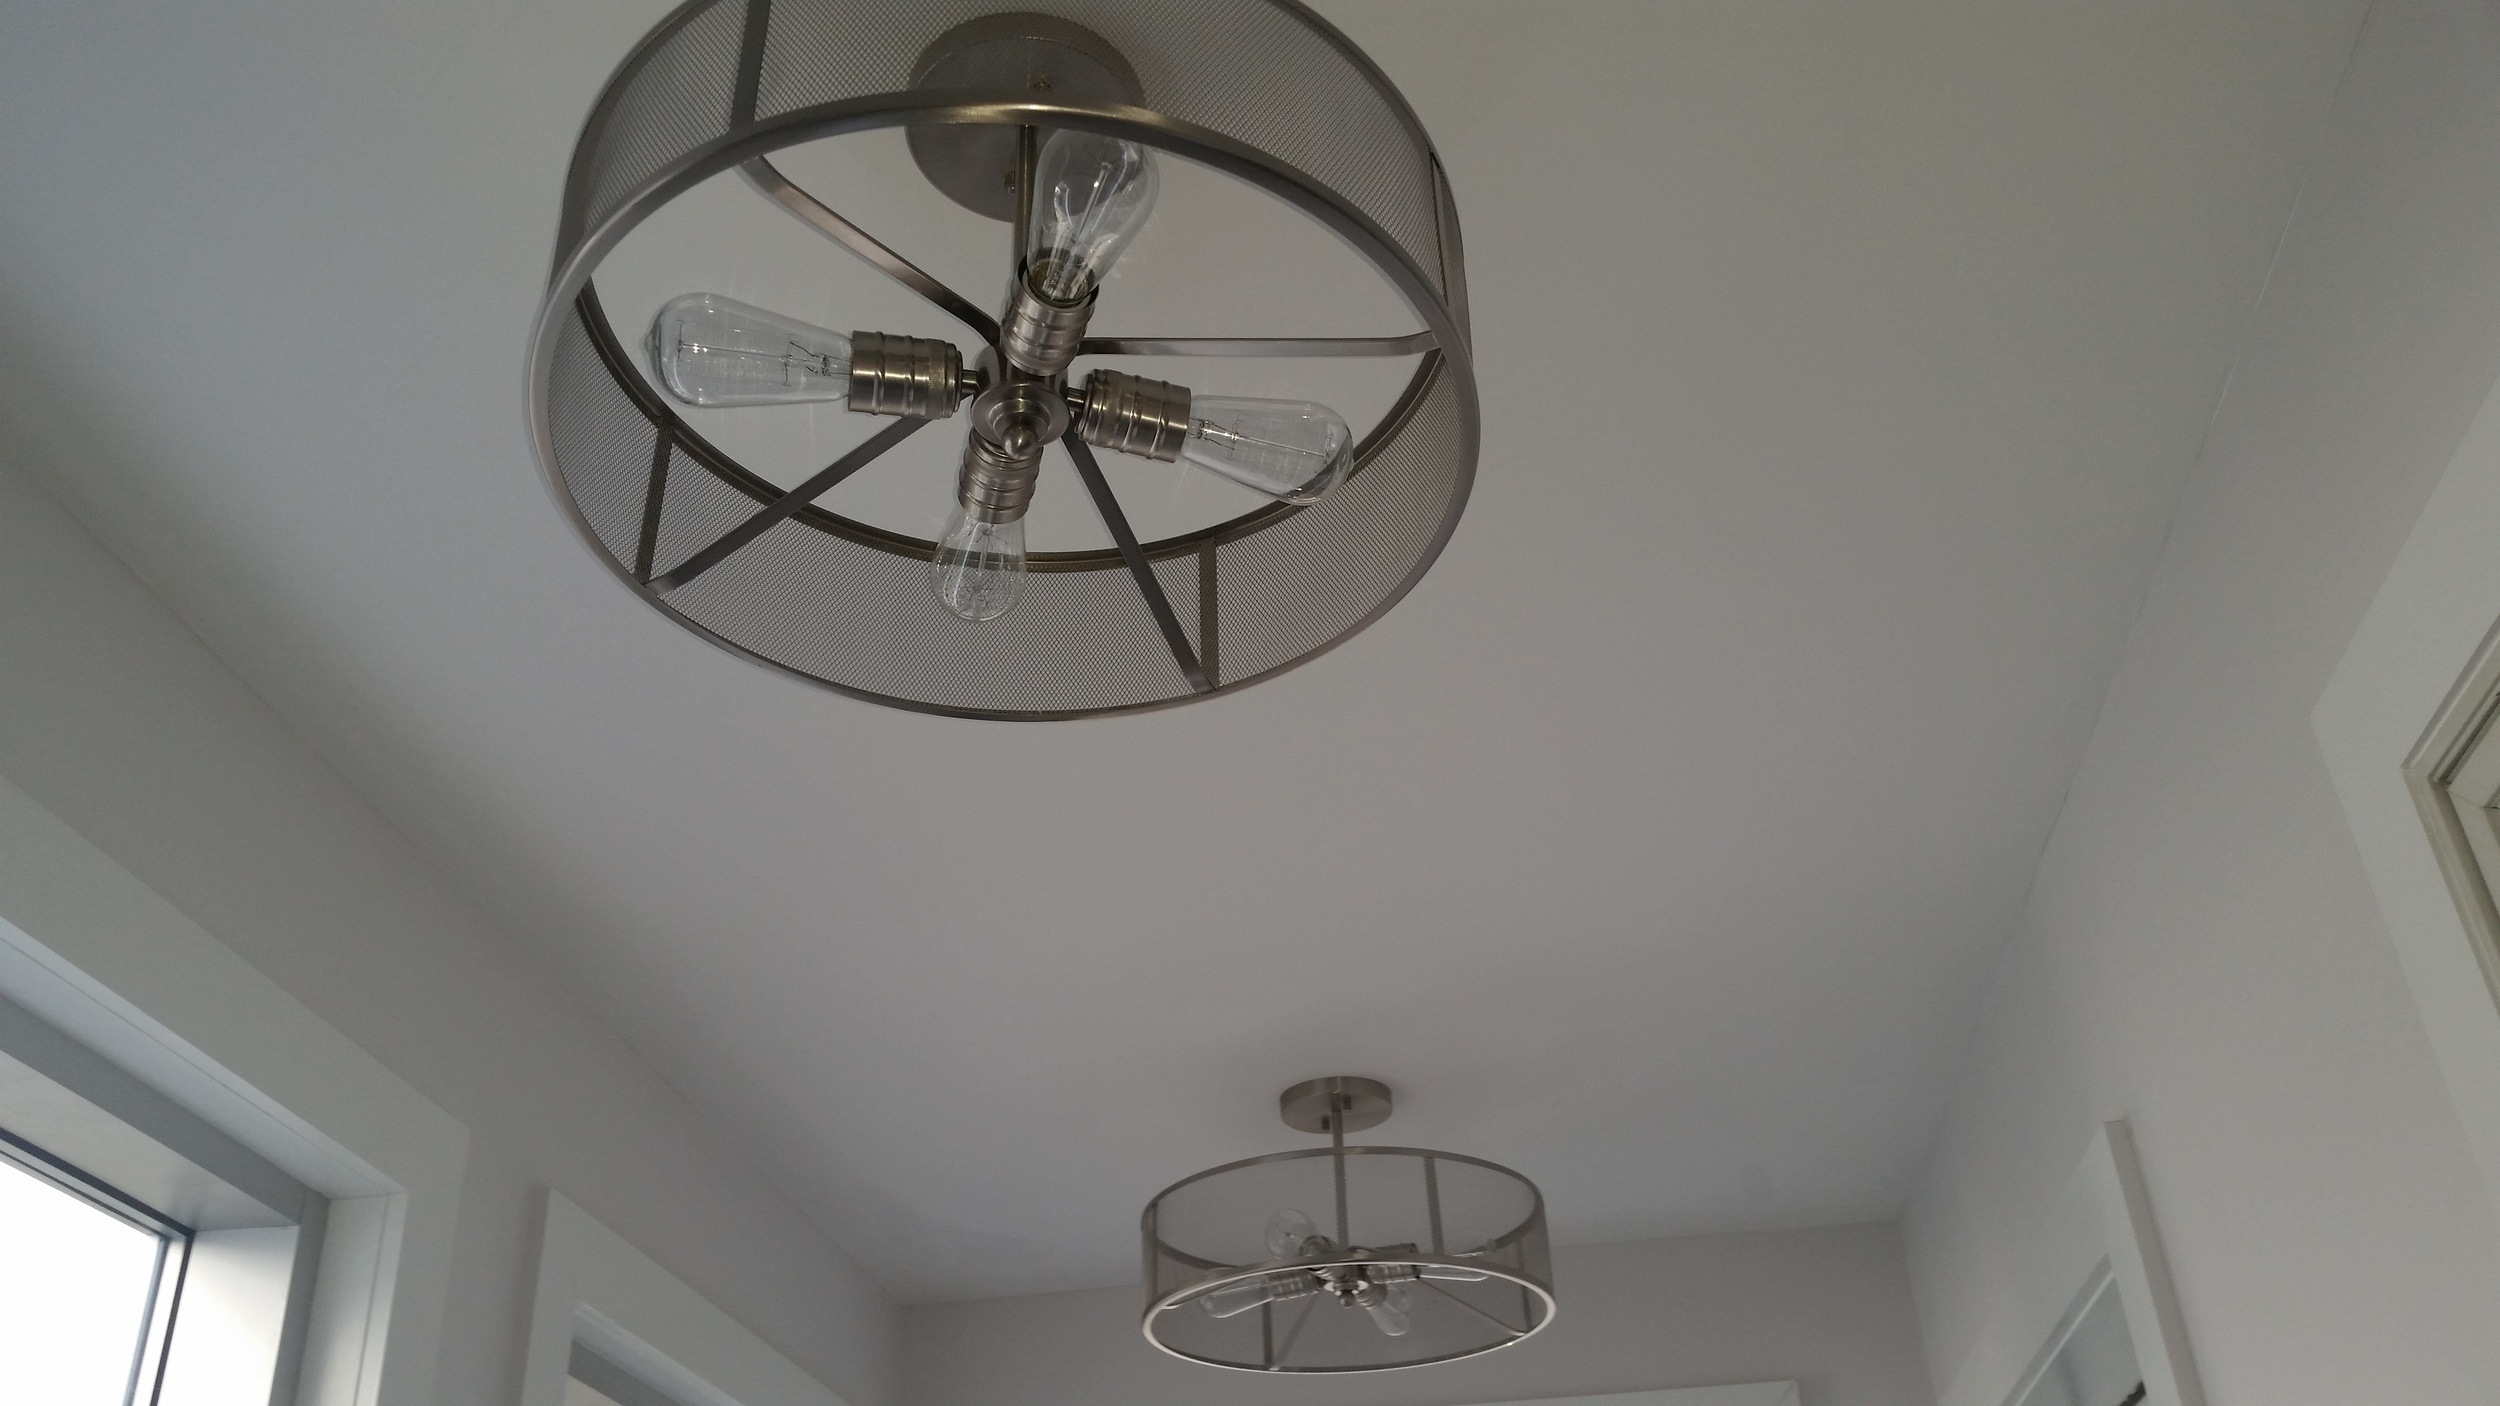 Interior lighting installation by Groundswell Contracting